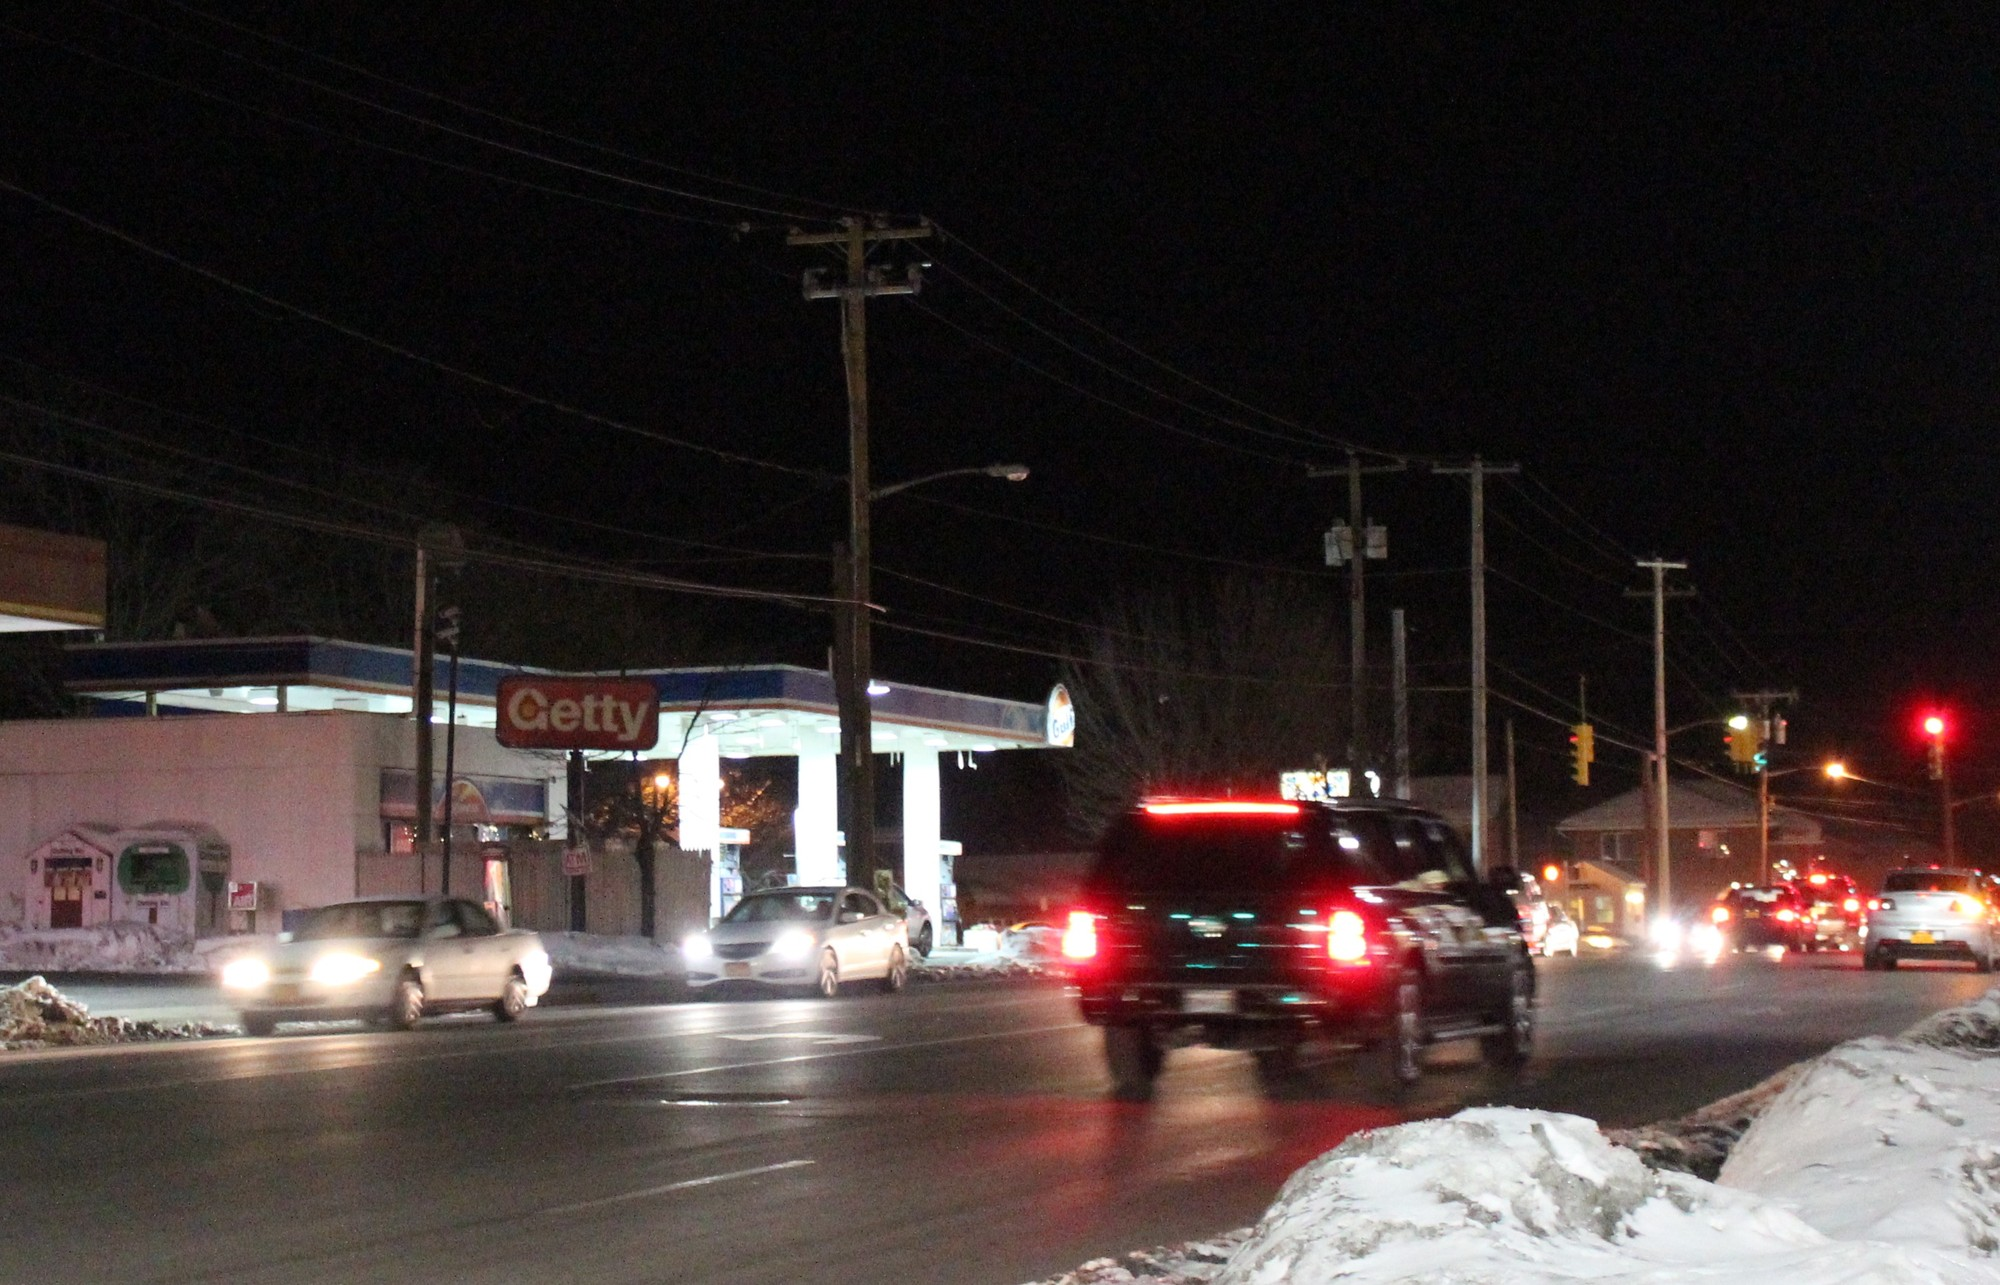 With streetlights out, vehicle headlights and gas station lights are the only illumination on Rockaway Turnpike in Cedarhurst.